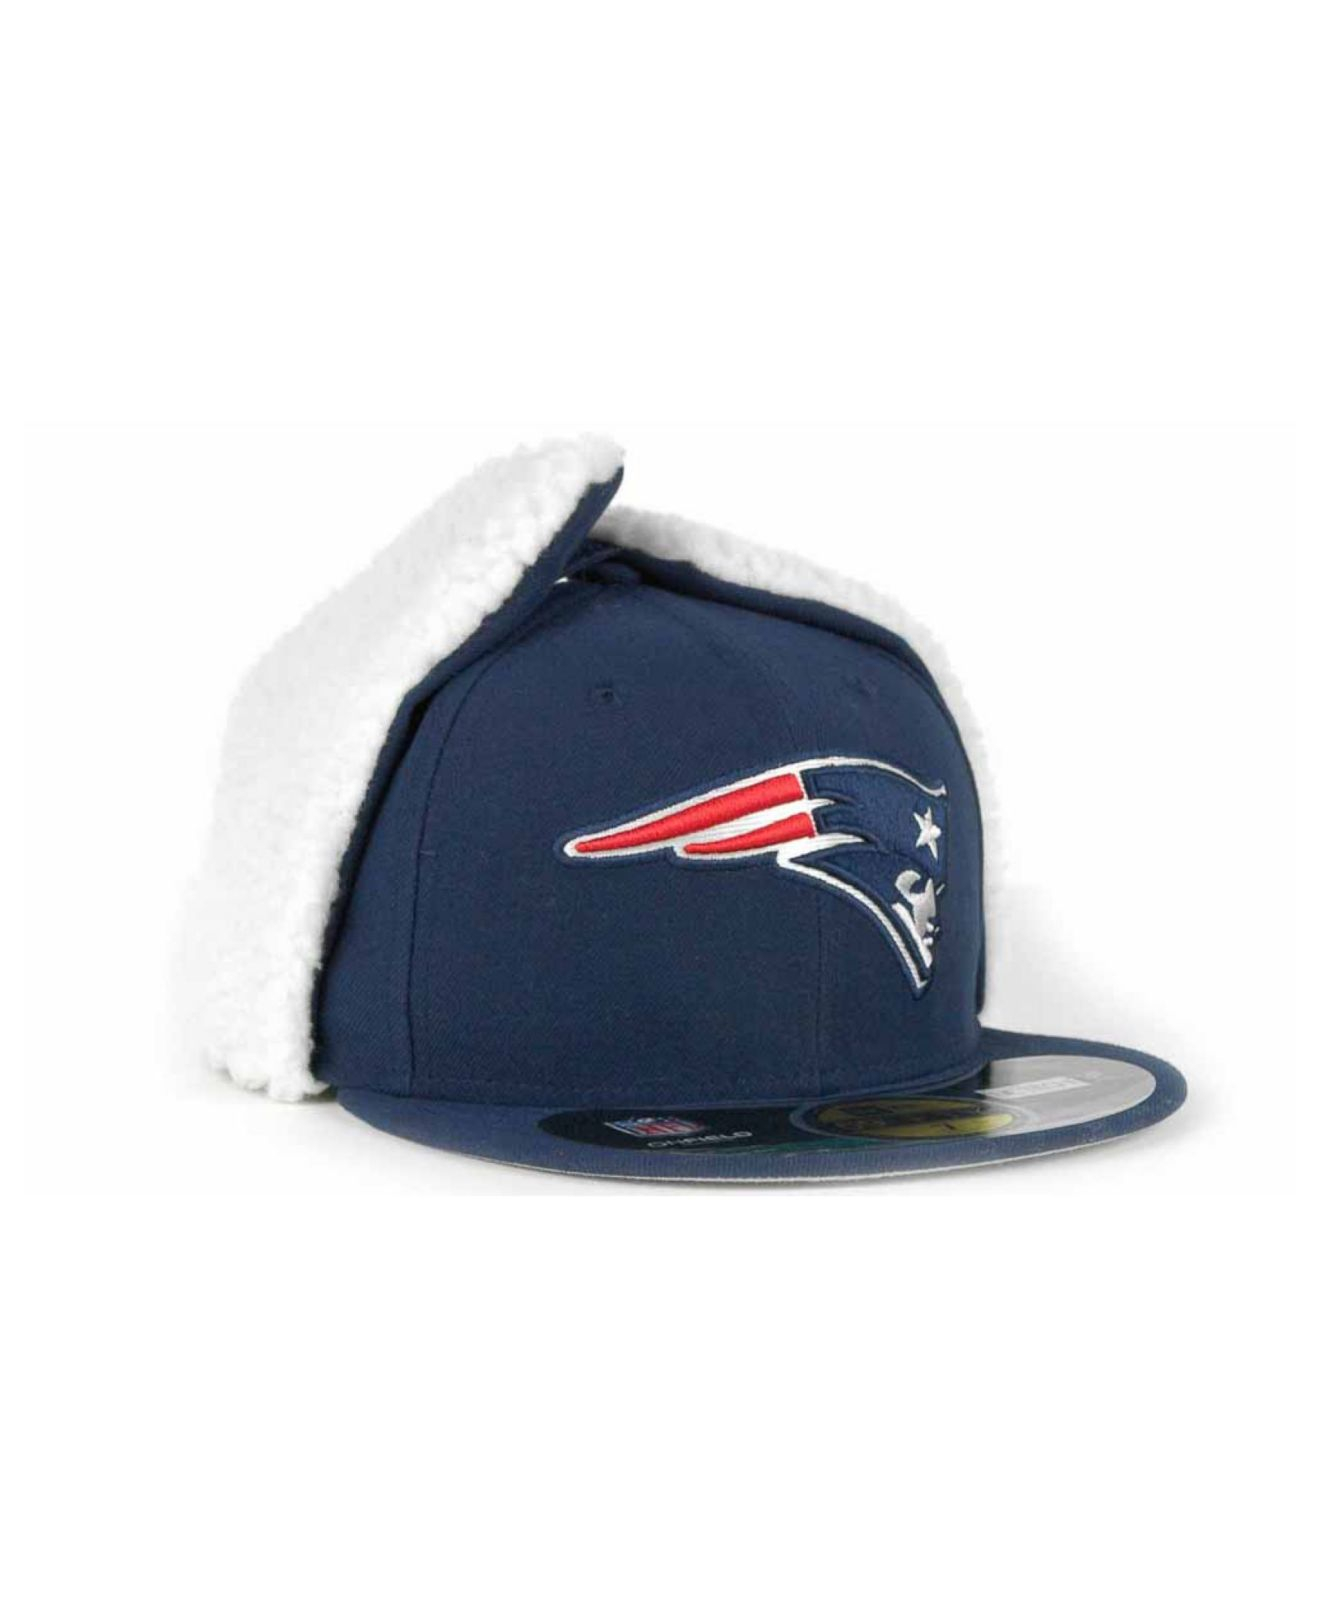 size 40 1aeef fd17b KTZ New England Patriots On-Field Dog Ear 59Fifty Cap in Blue for ...